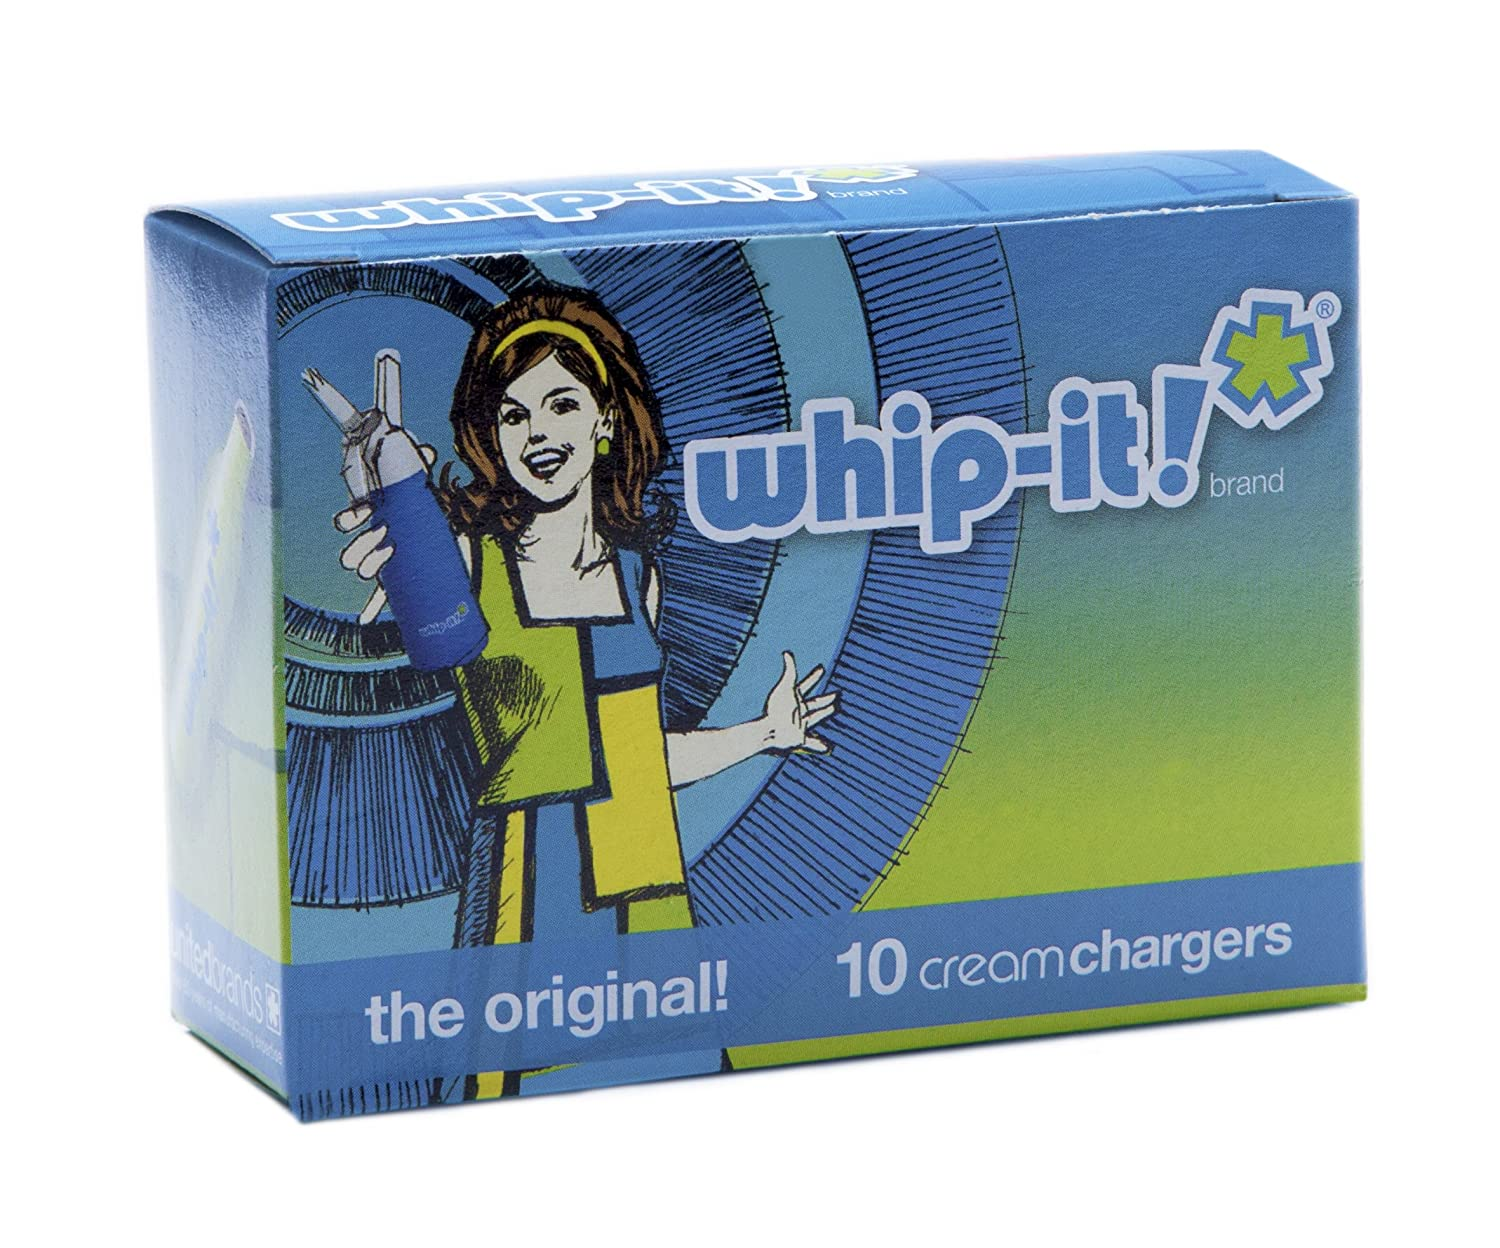 Whip-it! 50 Pack Whipped Cream Chargers